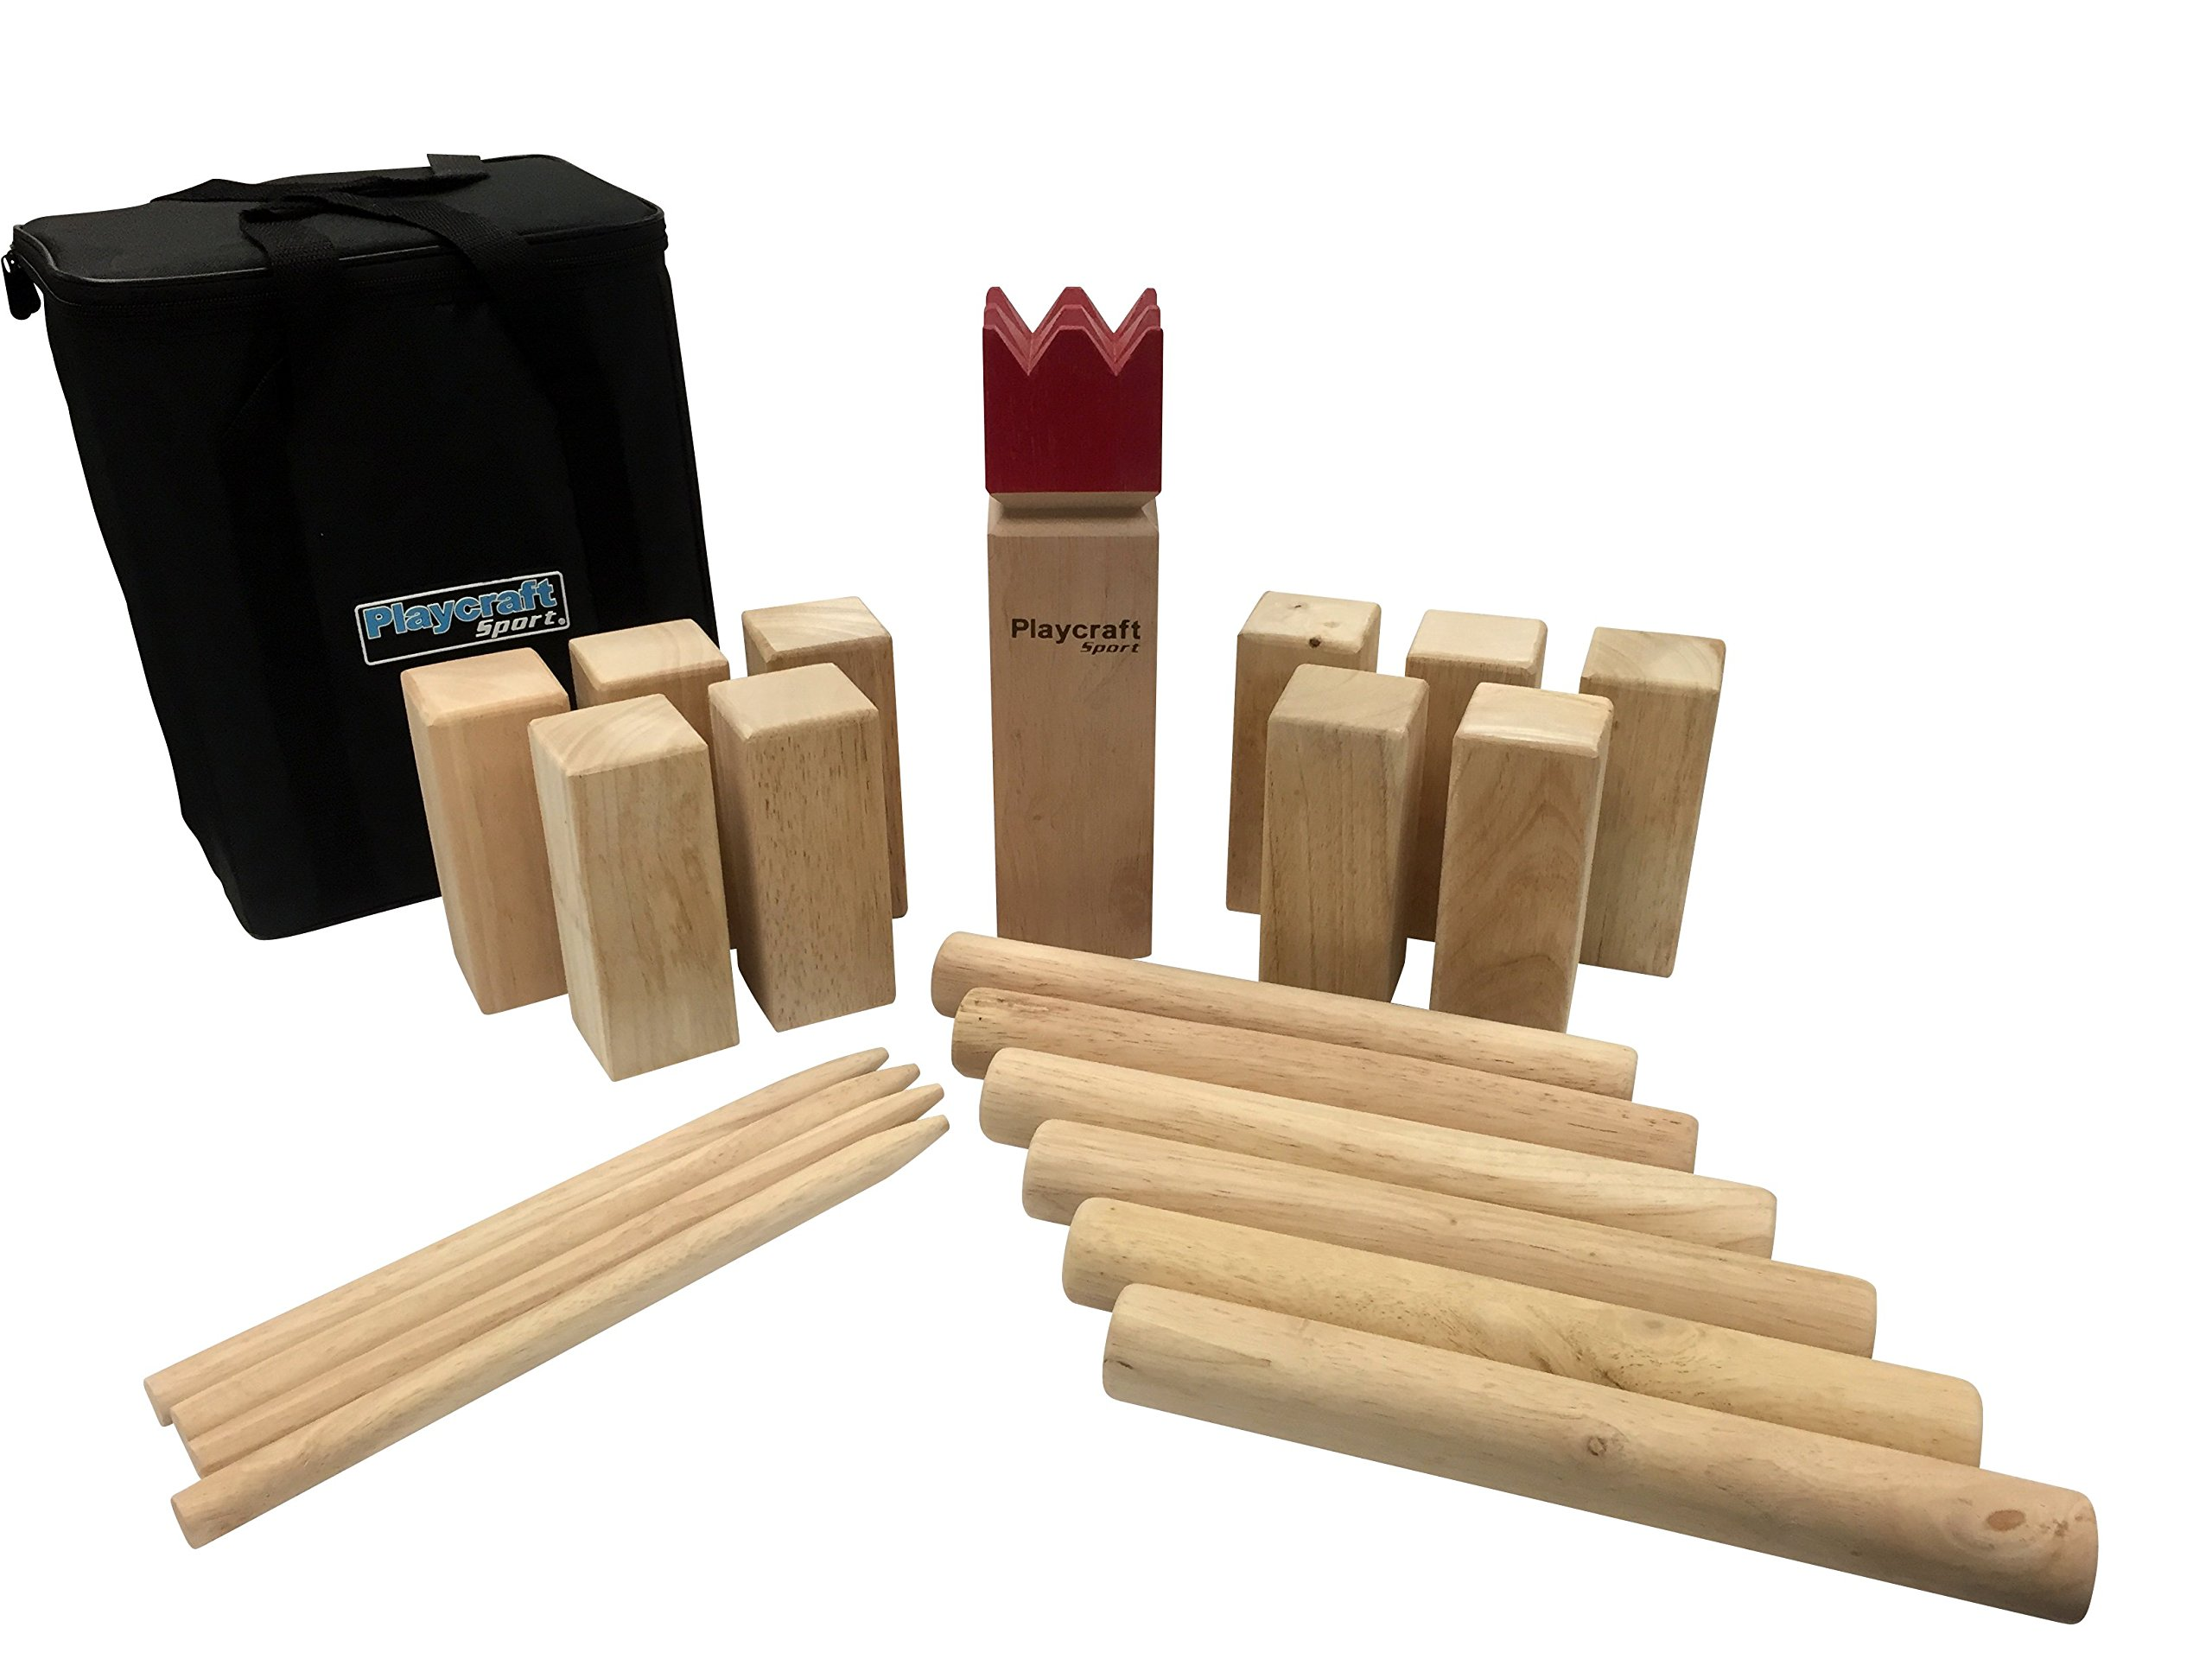 Playcraft Sport Deluxe Hardwood Kubb Game Set by Playcraft Sport (Image #1)